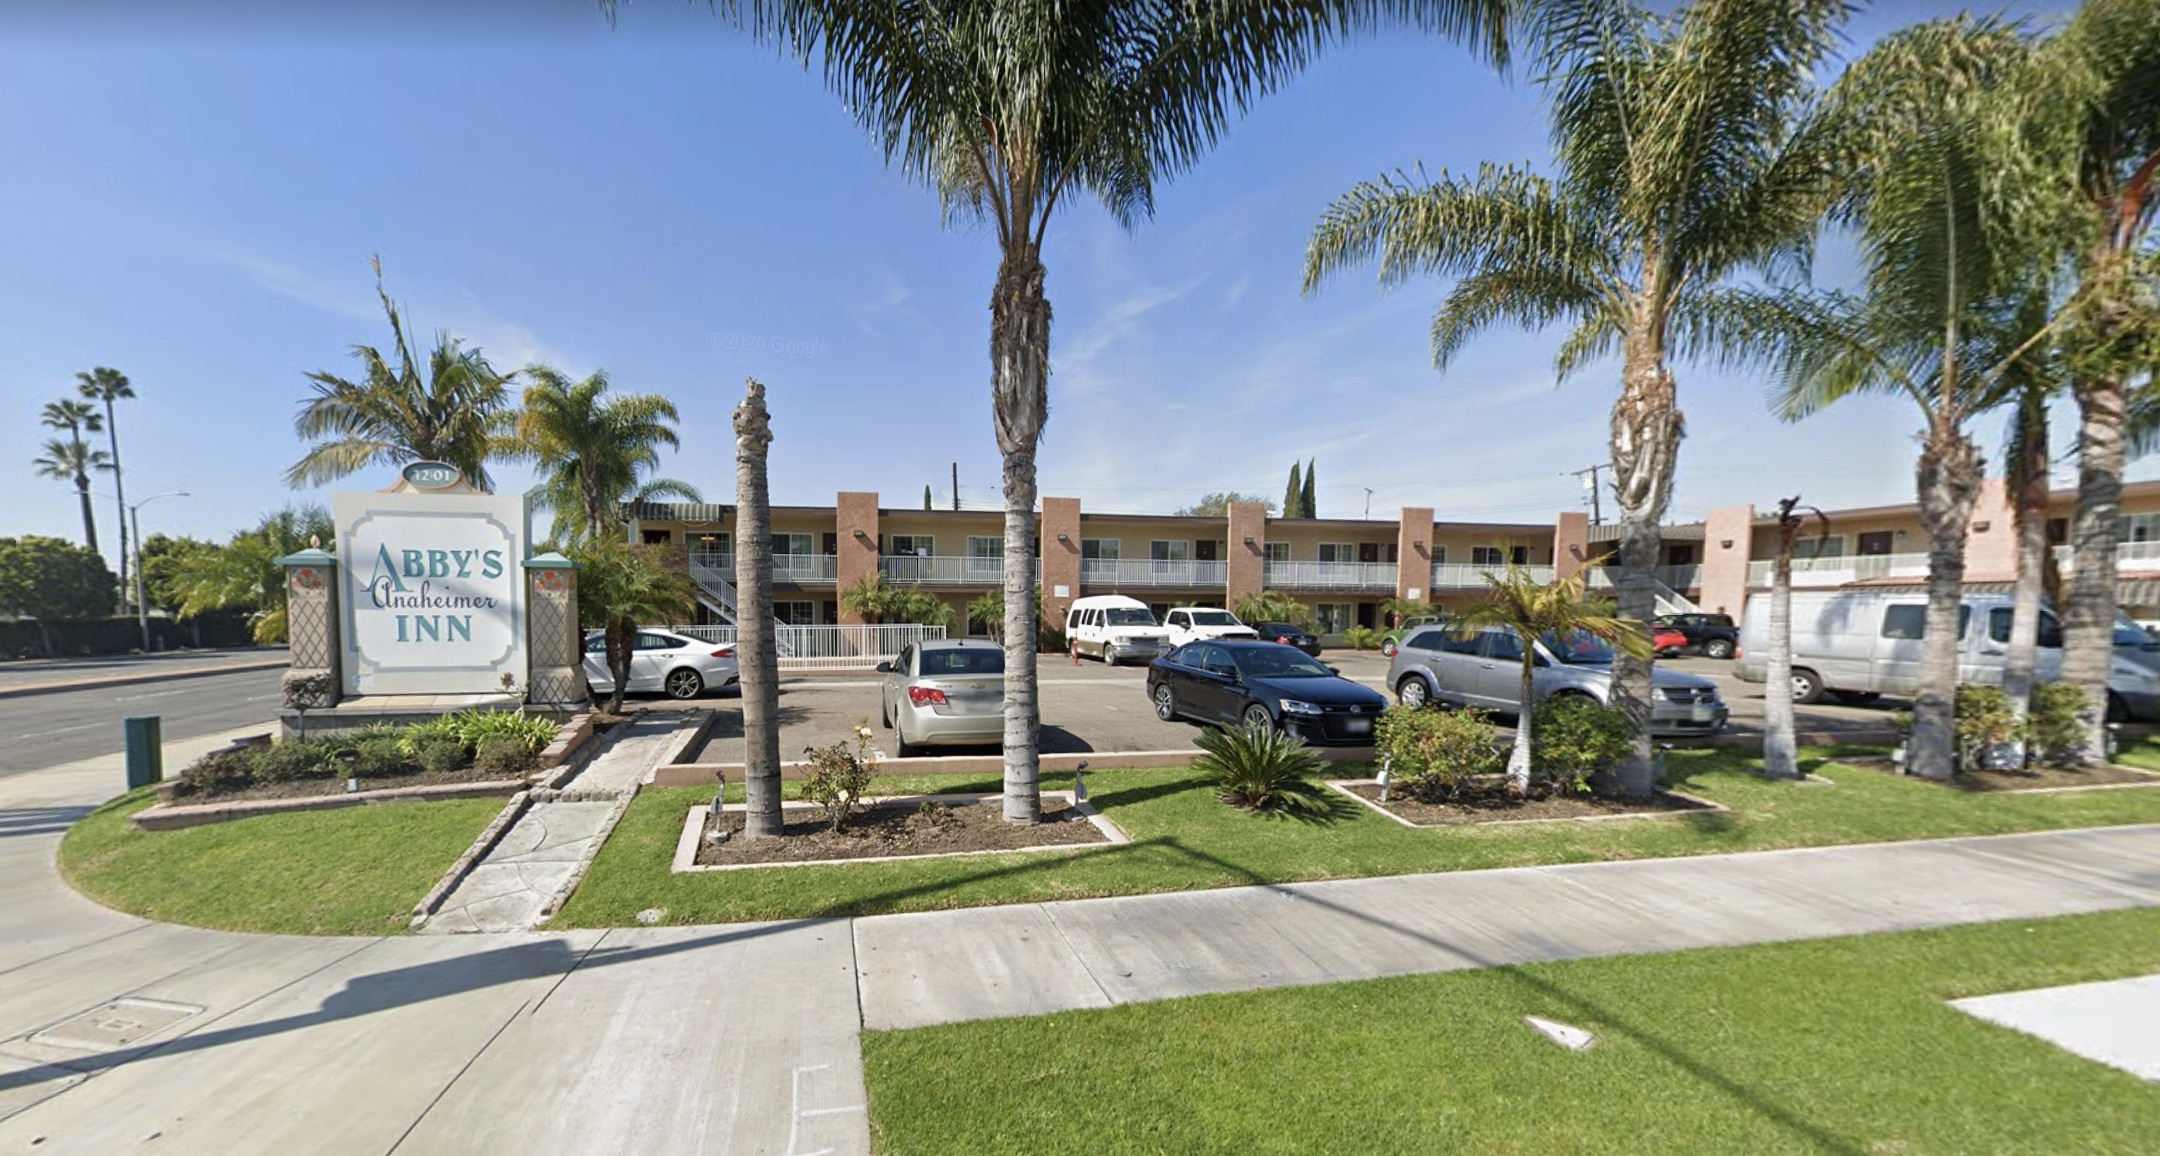 Abby's Anaheimer Inn in Anaheim is shown in a Street View image from Google Maps.